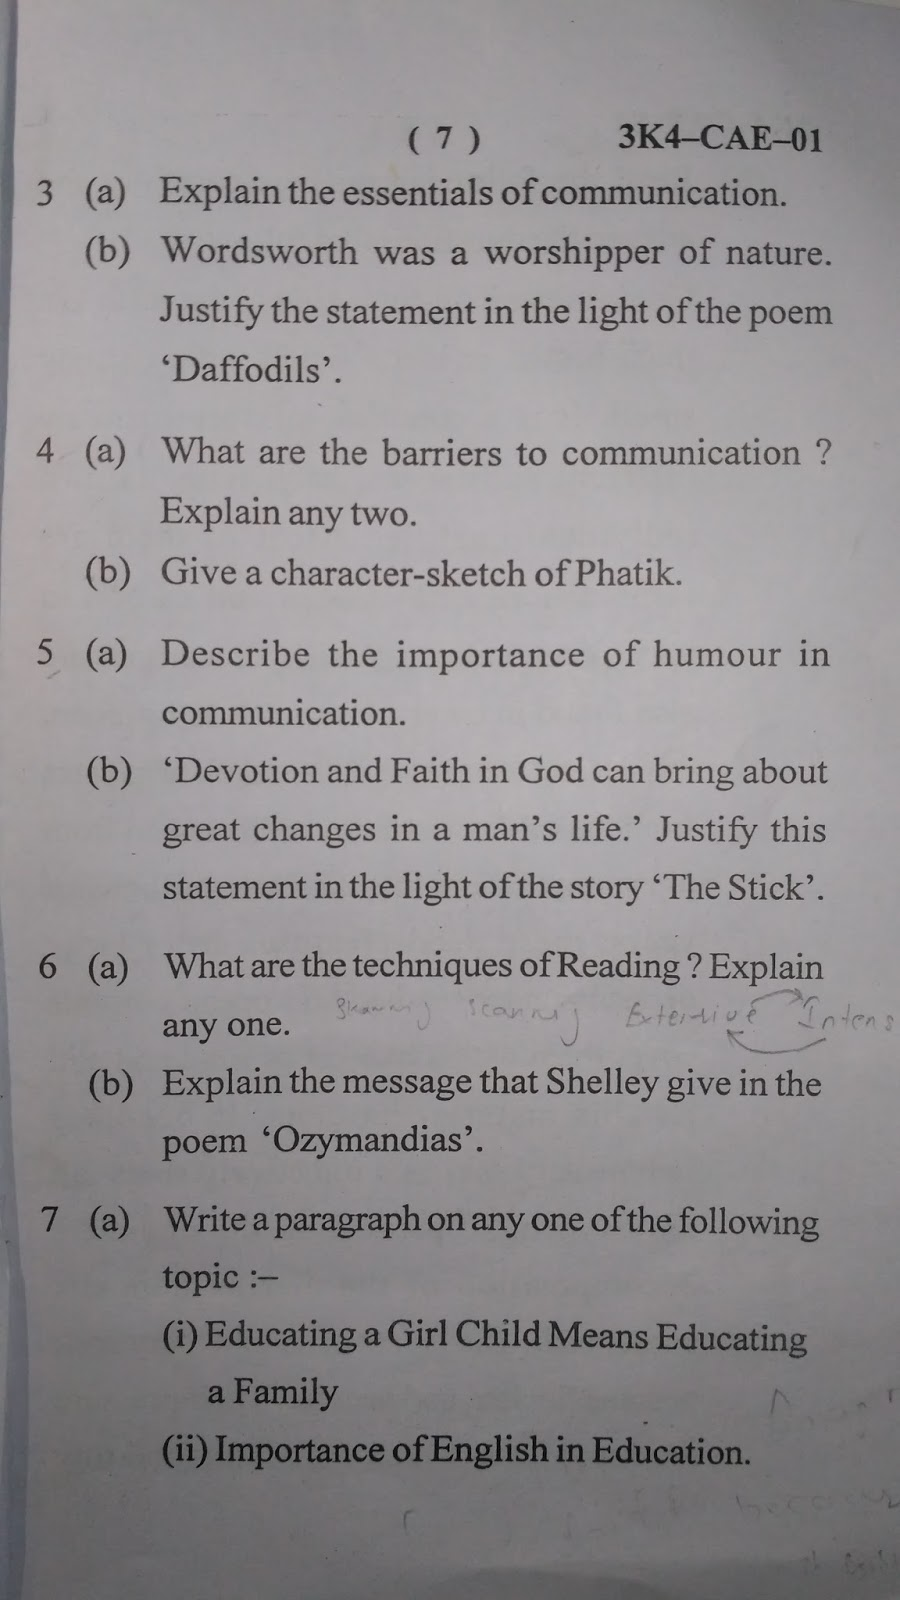 question paper of english and communication skills i question paper of english and communication skills i 2016 of civil